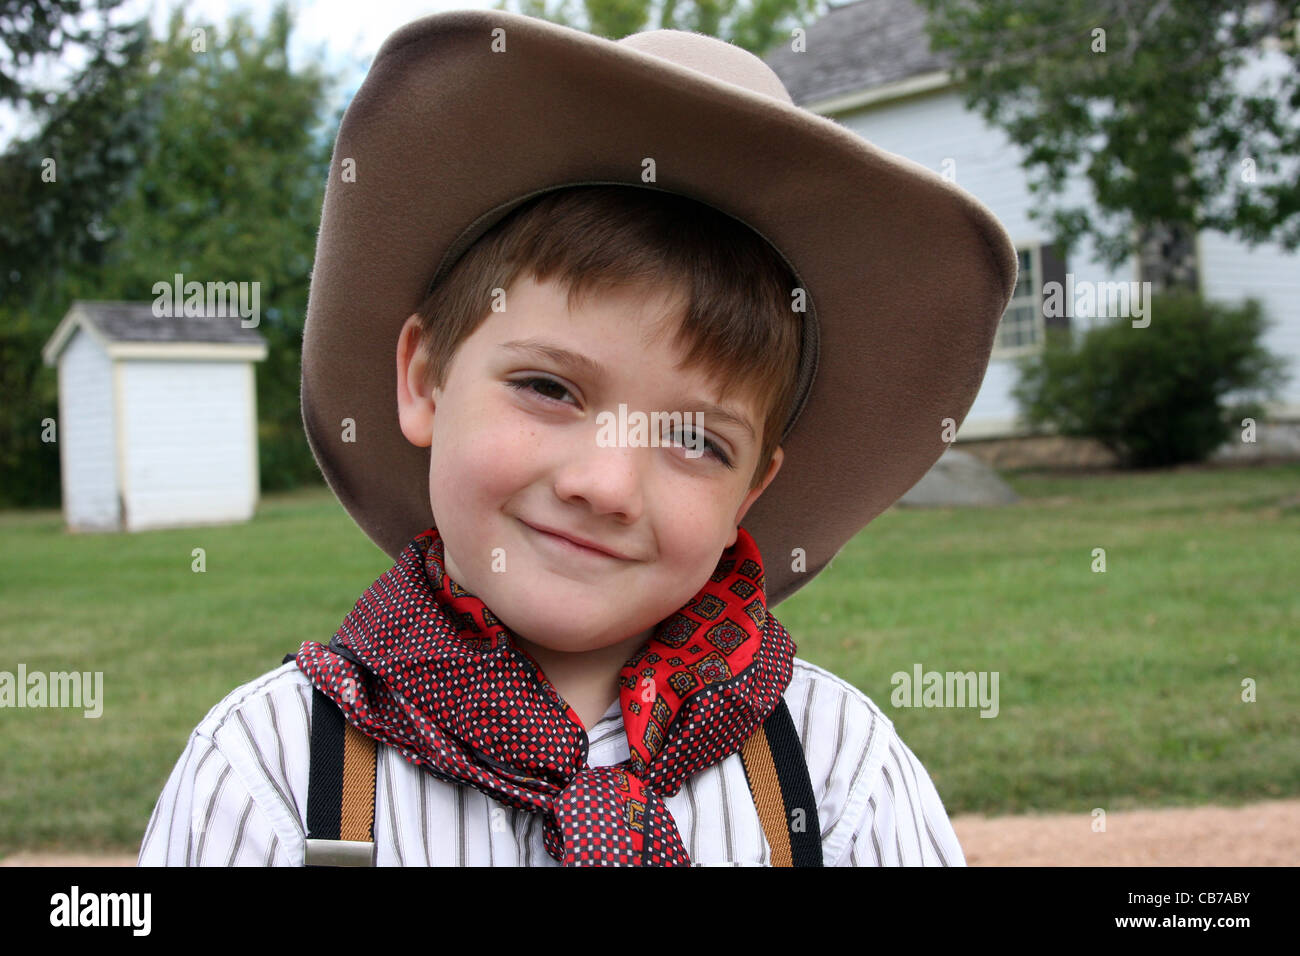 A young cowboy child tipping his hat Howdy in a greeting salute. C8HTAG  (RM). An adorable cowboy in front of a ranch house and outhouse - Stock  Image 75714337ae07